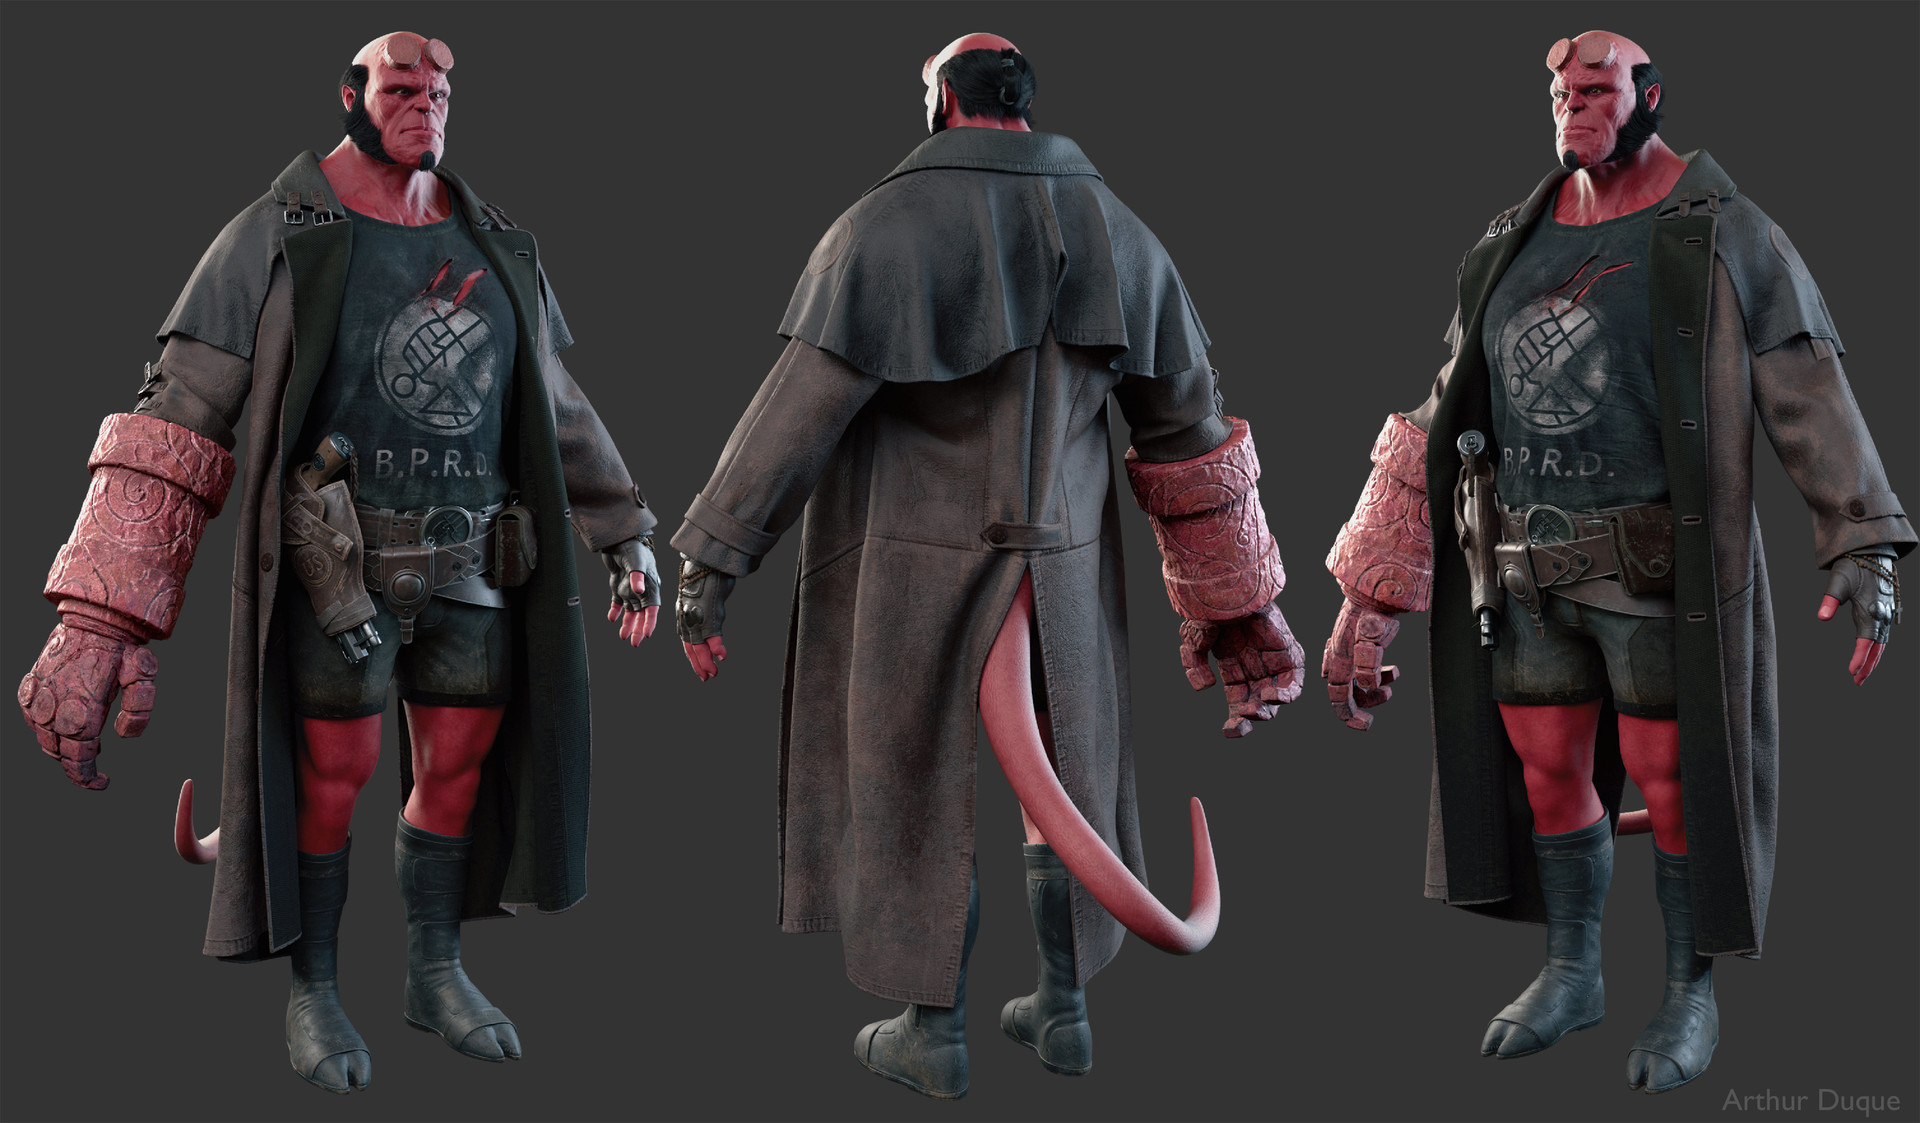 Arthur duque hellboy cloth 01